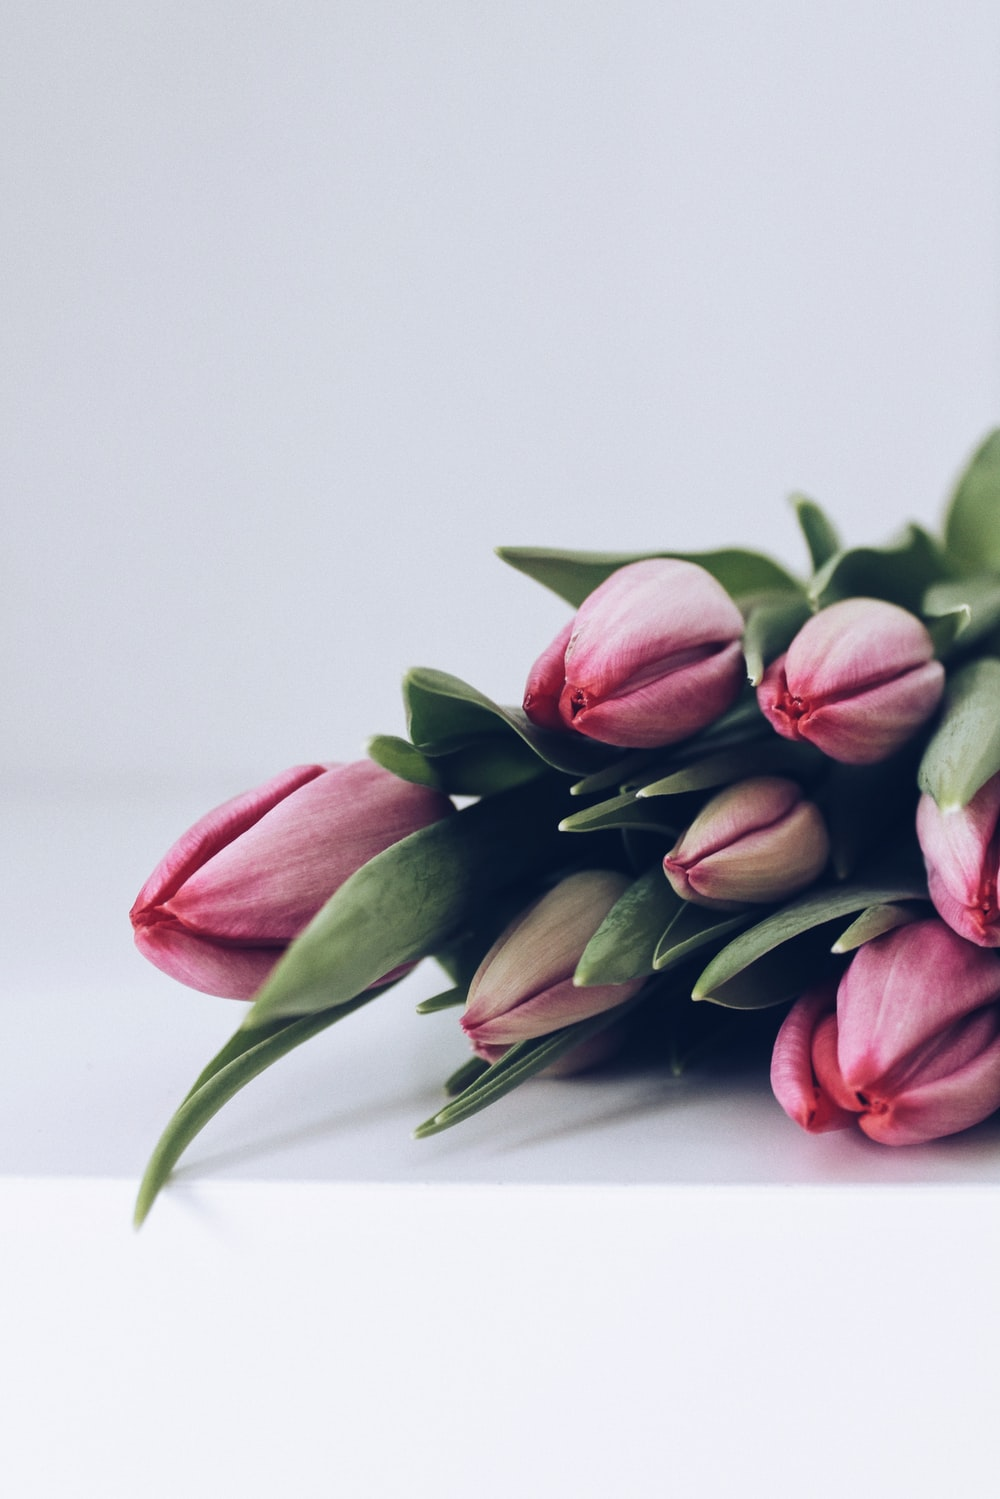 pink tulips on white table